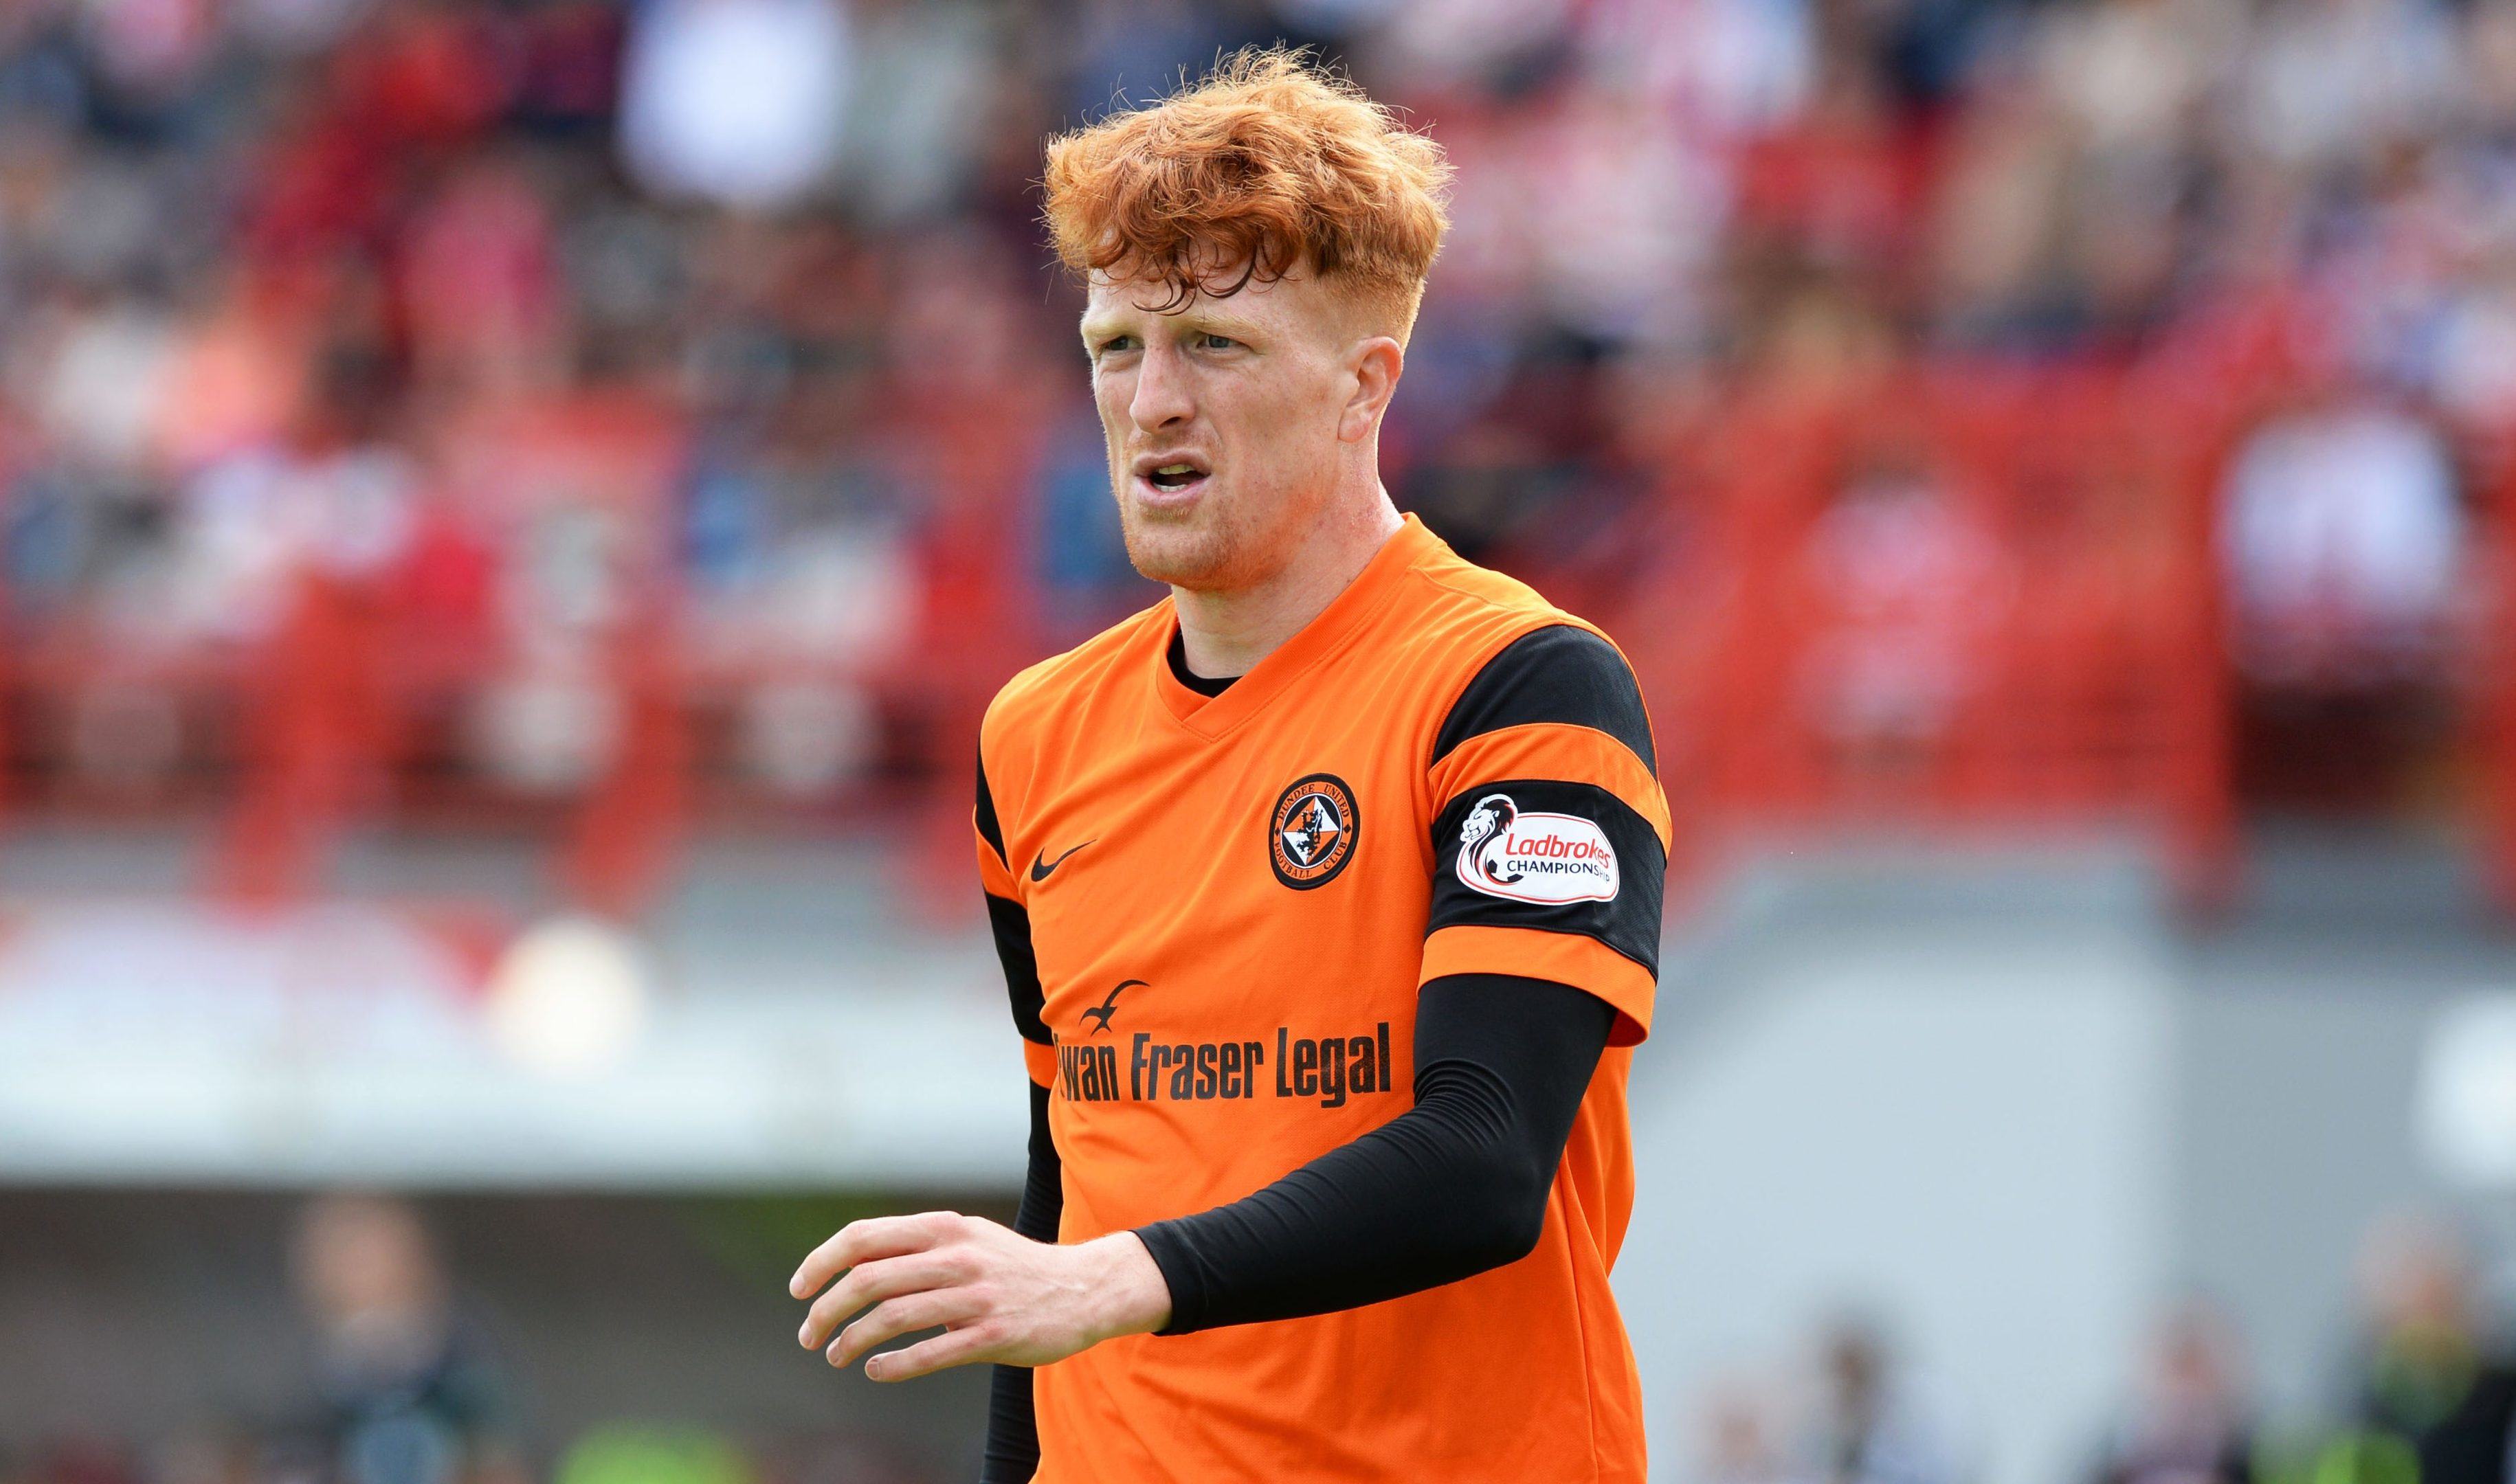 Simon Murray during yesterday's game at the Superseal Stadium